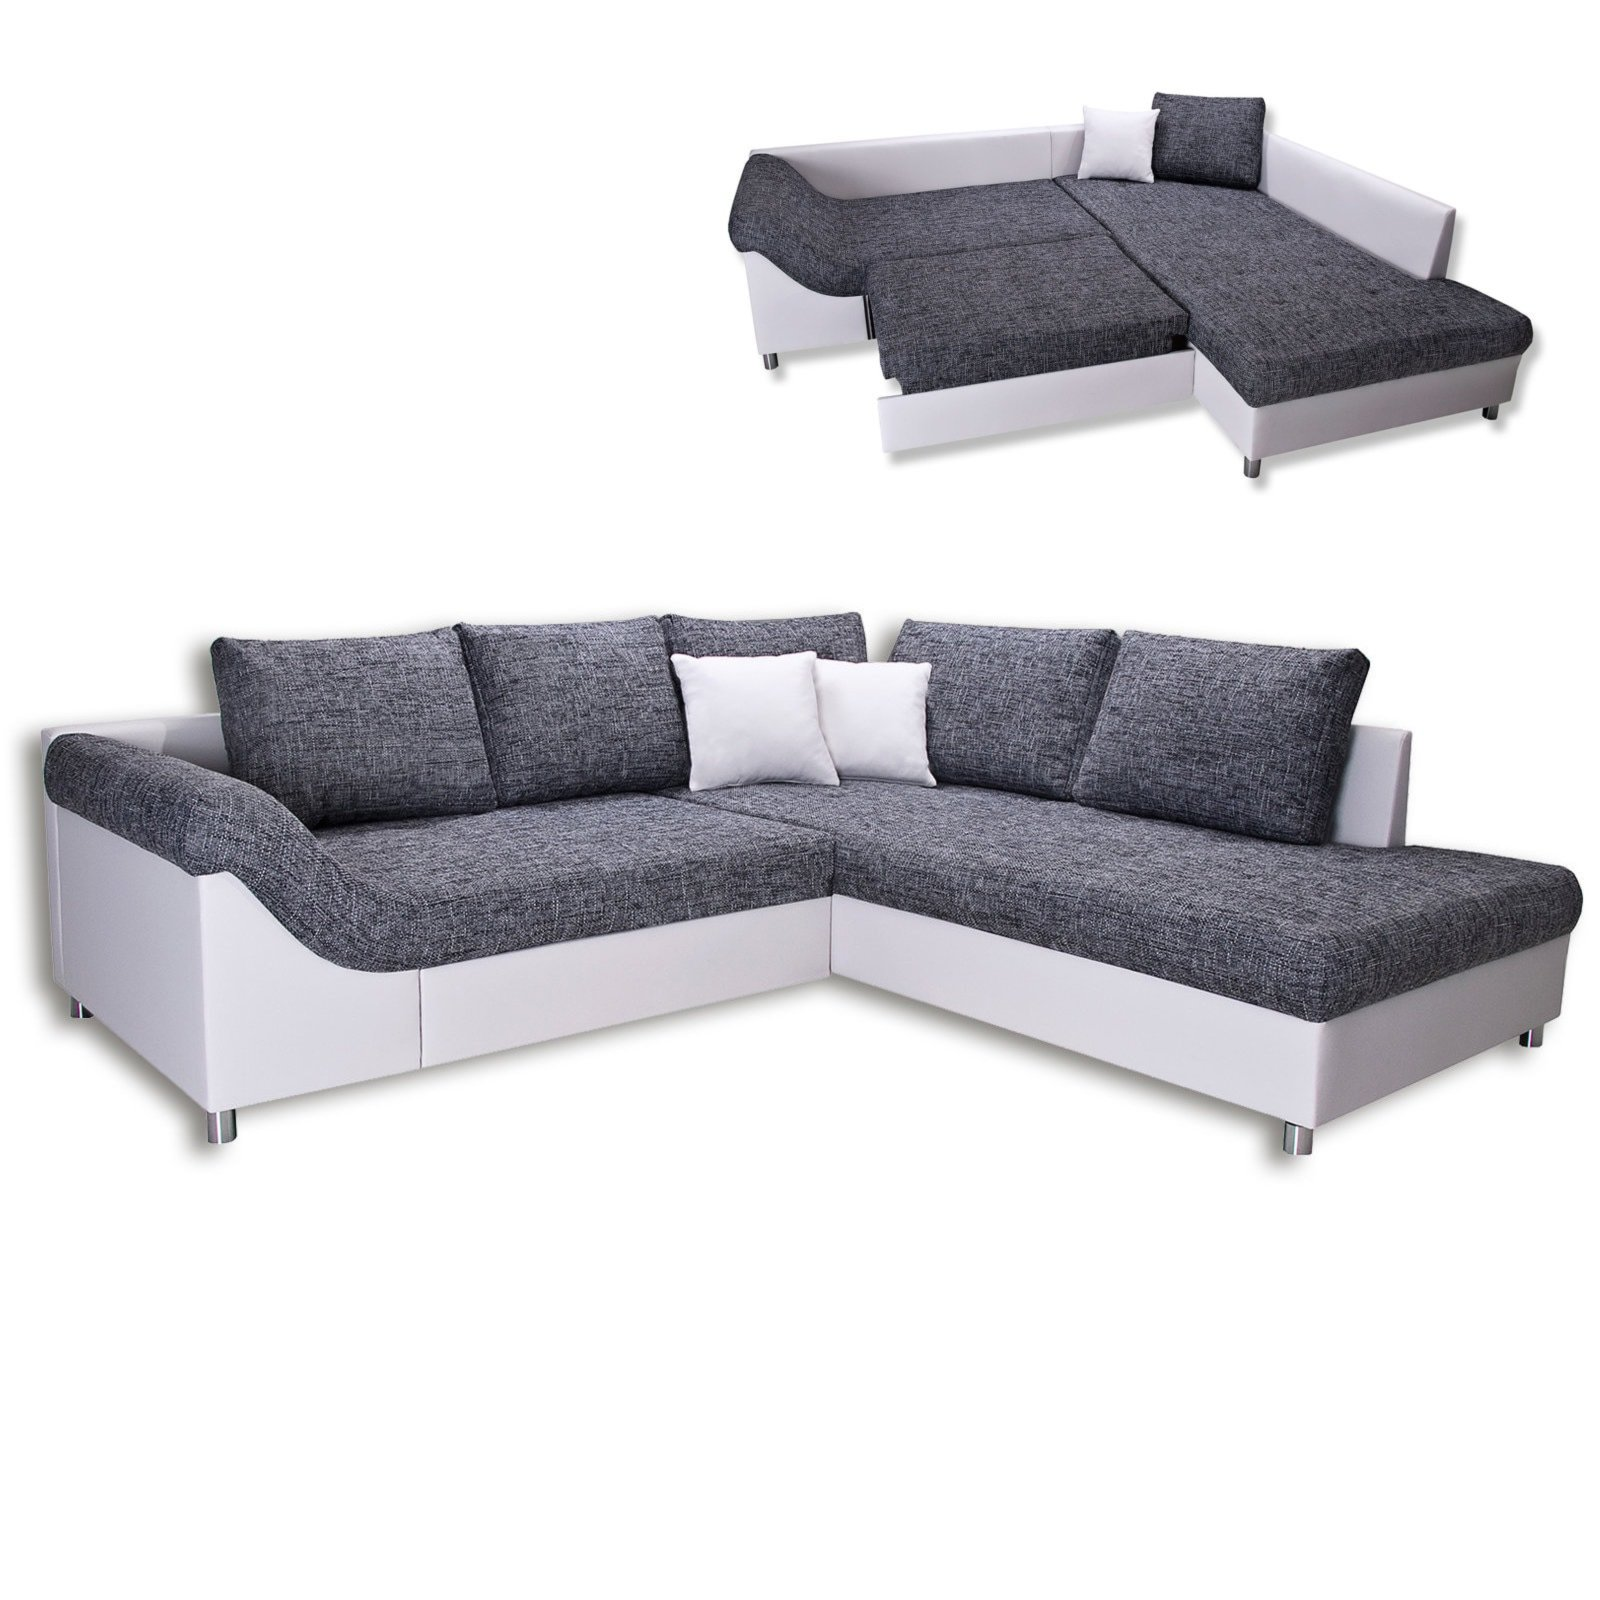 ecksofa grau wei armlehne links liegefunktion. Black Bedroom Furniture Sets. Home Design Ideas